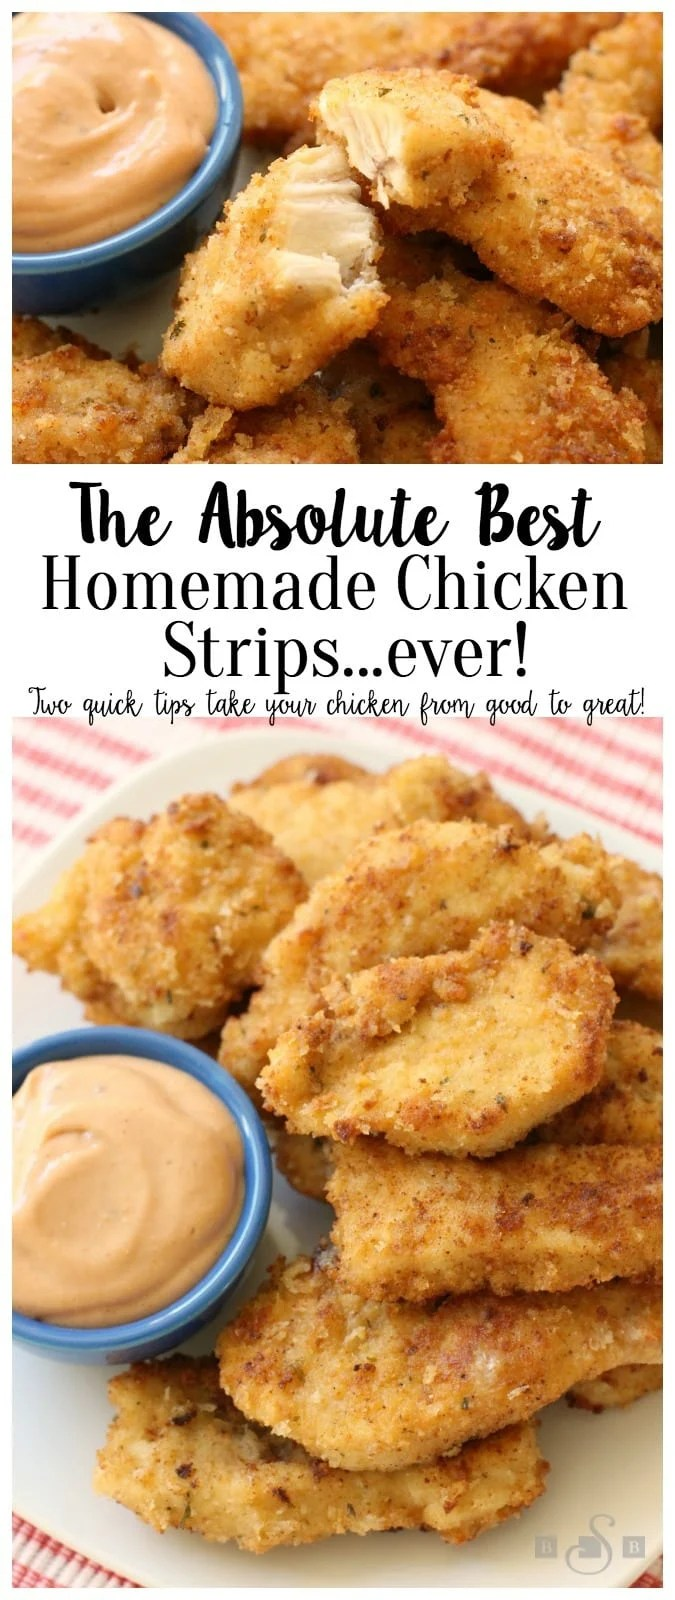 These Homemade Chicken Strips are tender, juicy & flavorful. Easy to make at home as I share 2 tips on how to take #chicken strips from good to great! Chicken #dinner #recipe from Butter With A Side of Bread #appetizers #gameday #chickentenders